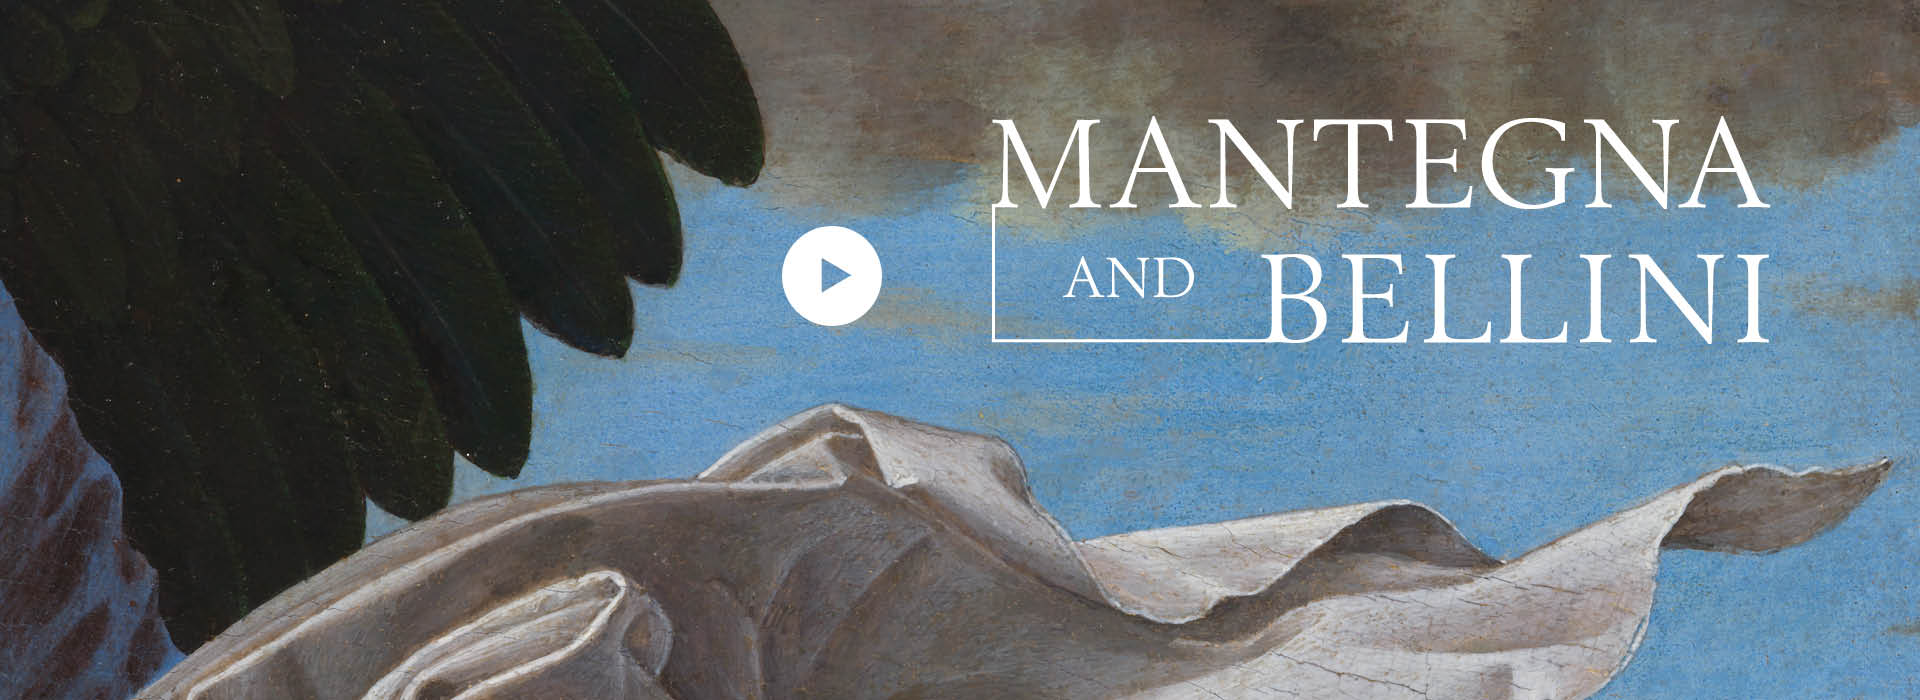 Mantegna and Bellini | Archive | National Gallery, London